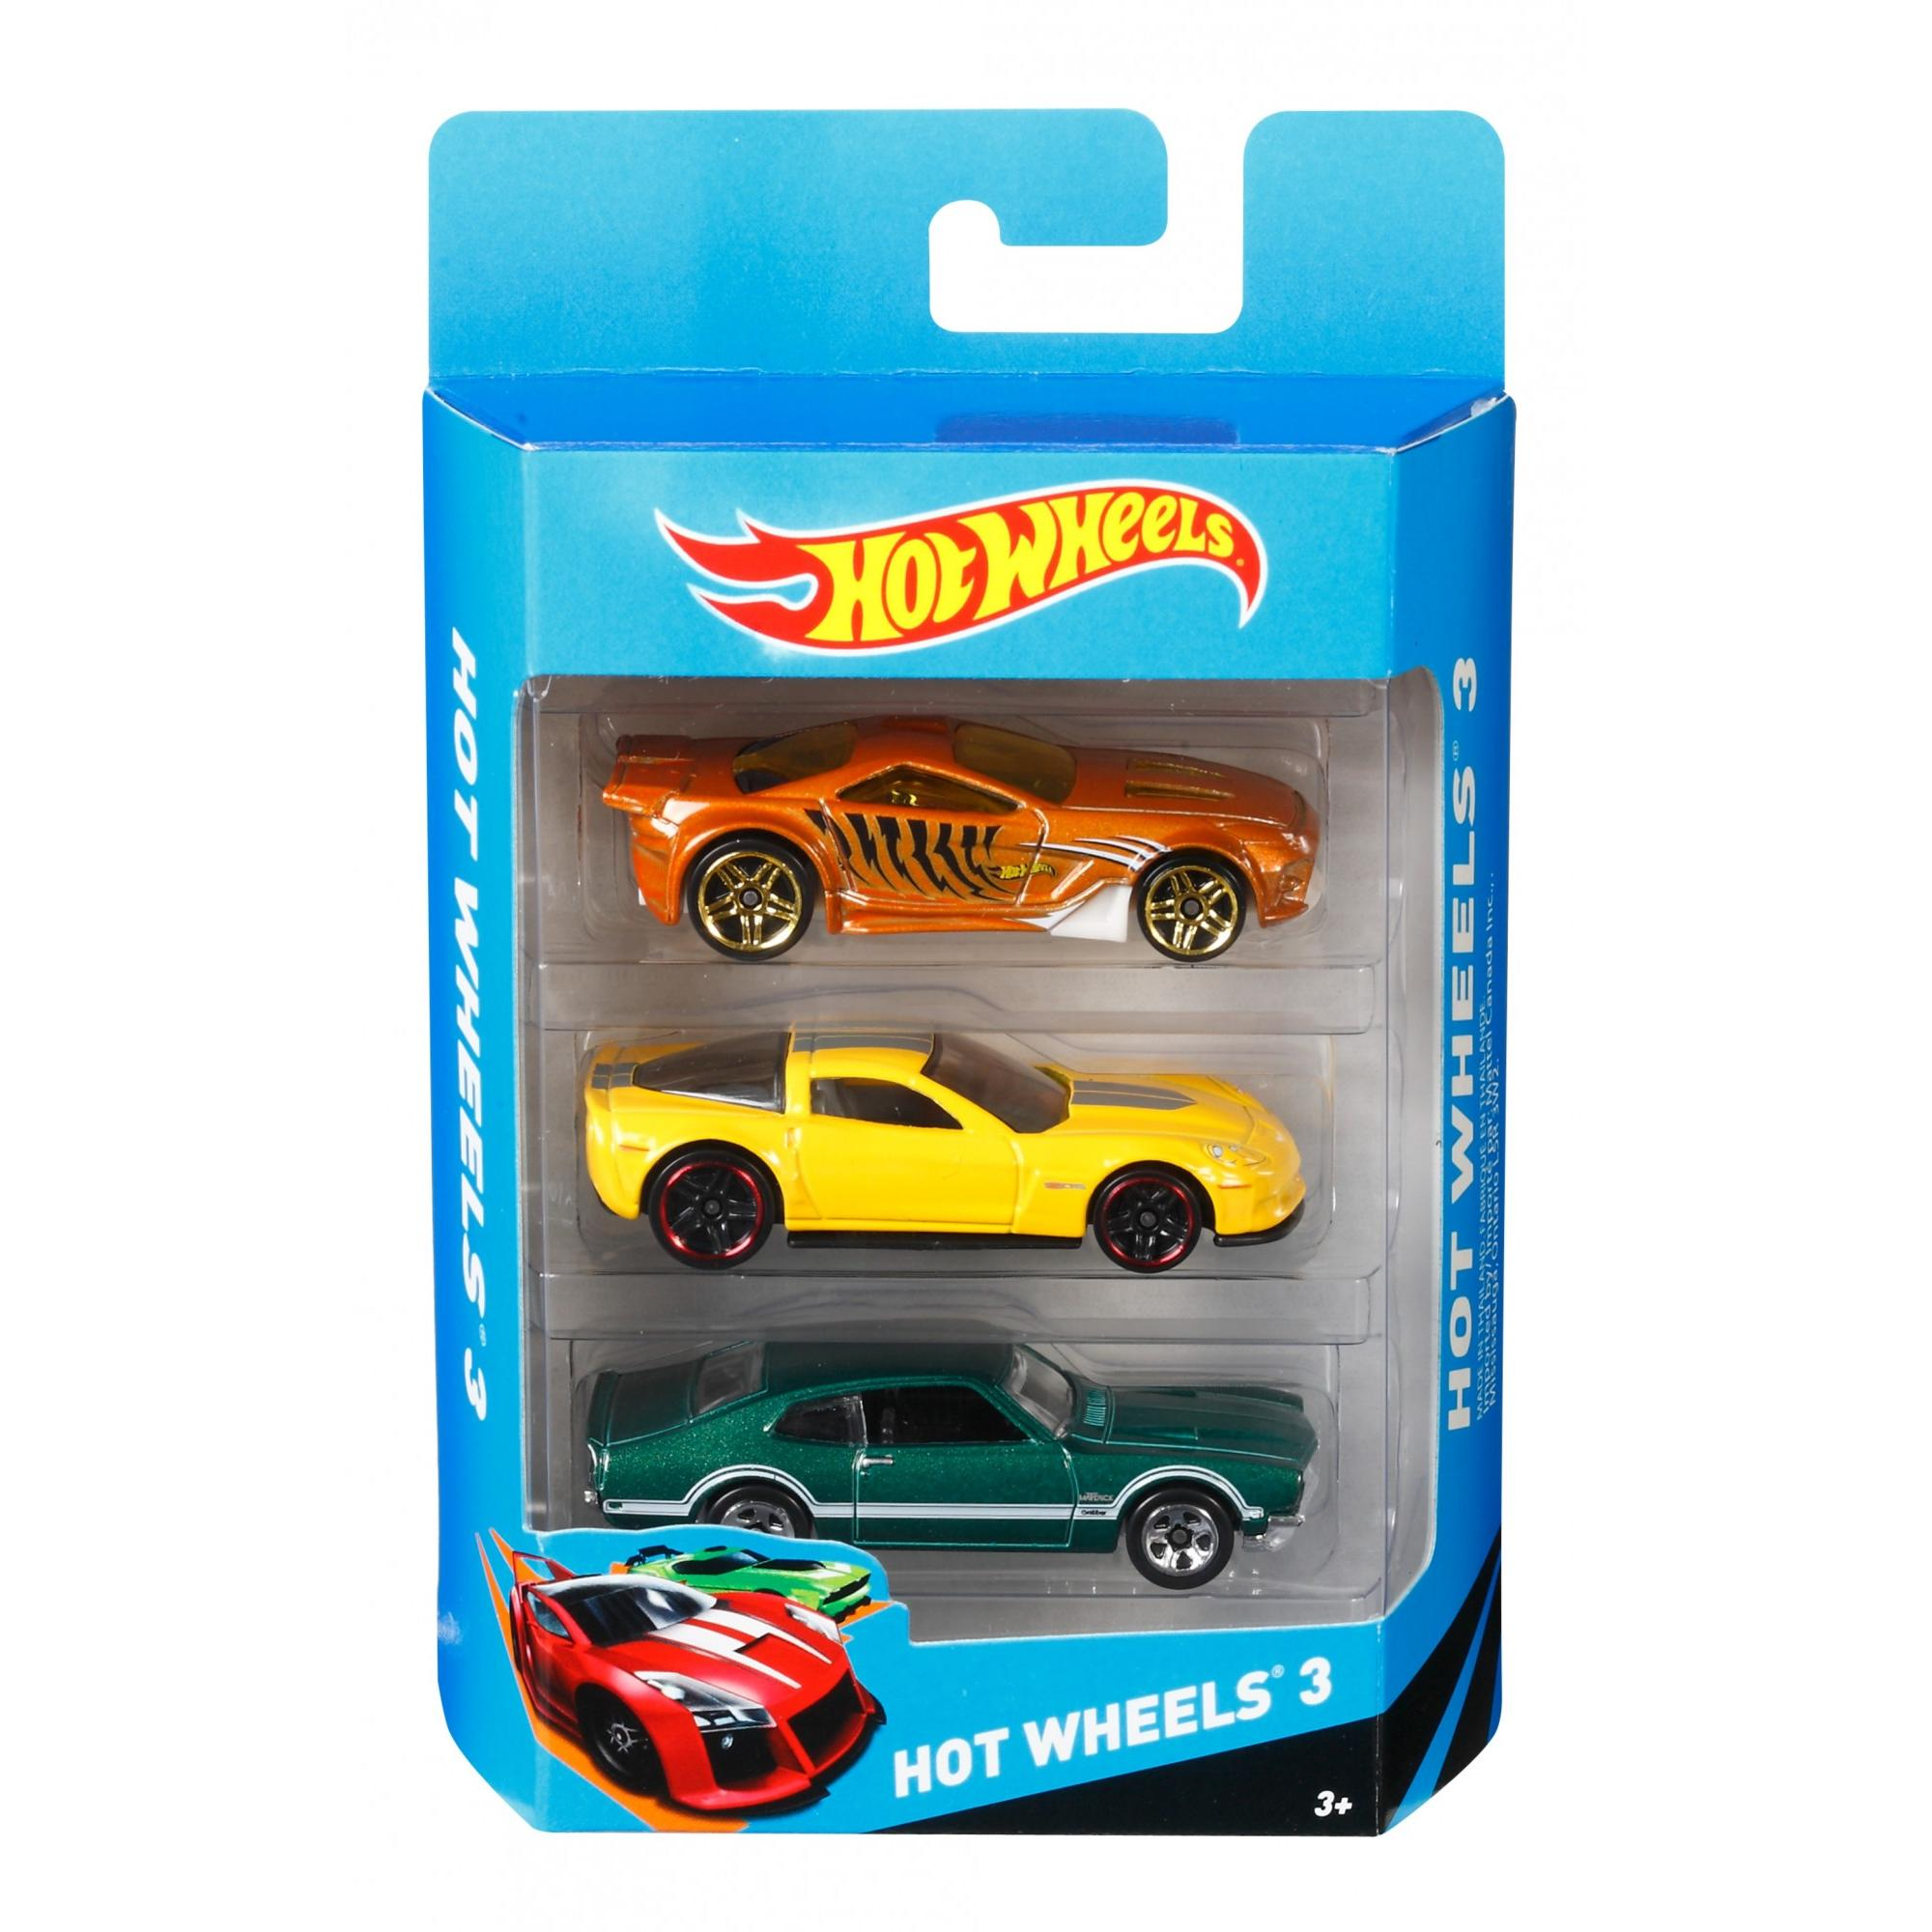 Hot Wheels 3 Die-Cast Car Gift Pack (Styles May Vary) by Mattel